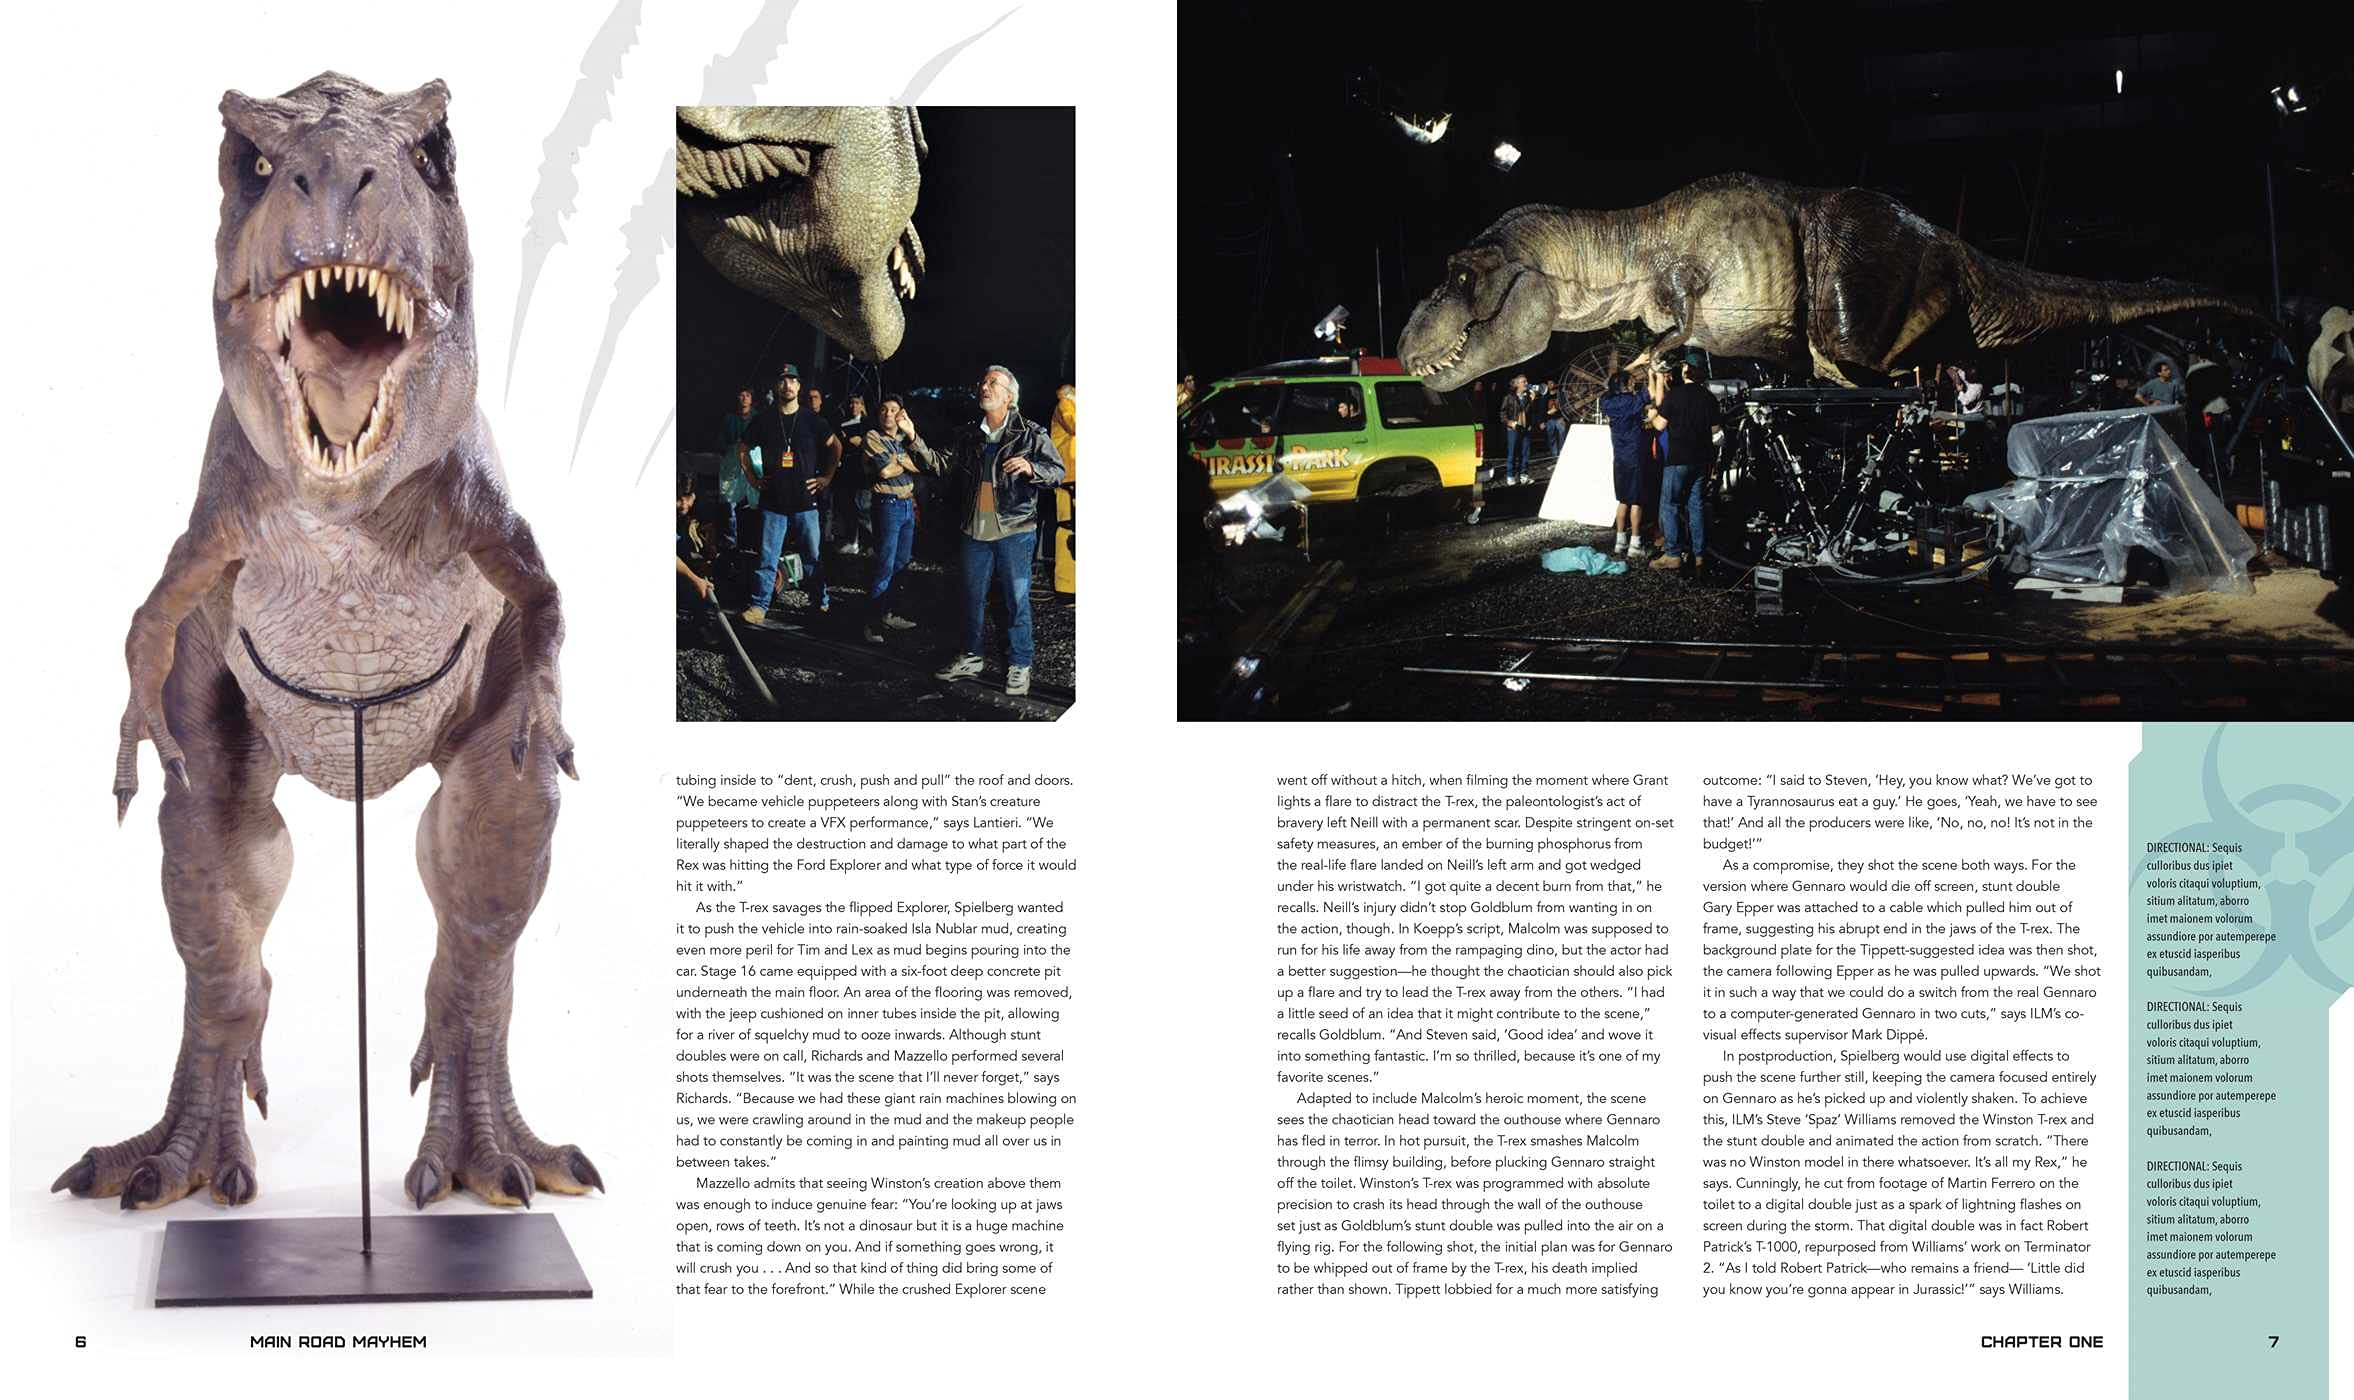 Jurassic Park: The Ultimate Visual History announced 81Jg1QayW4S